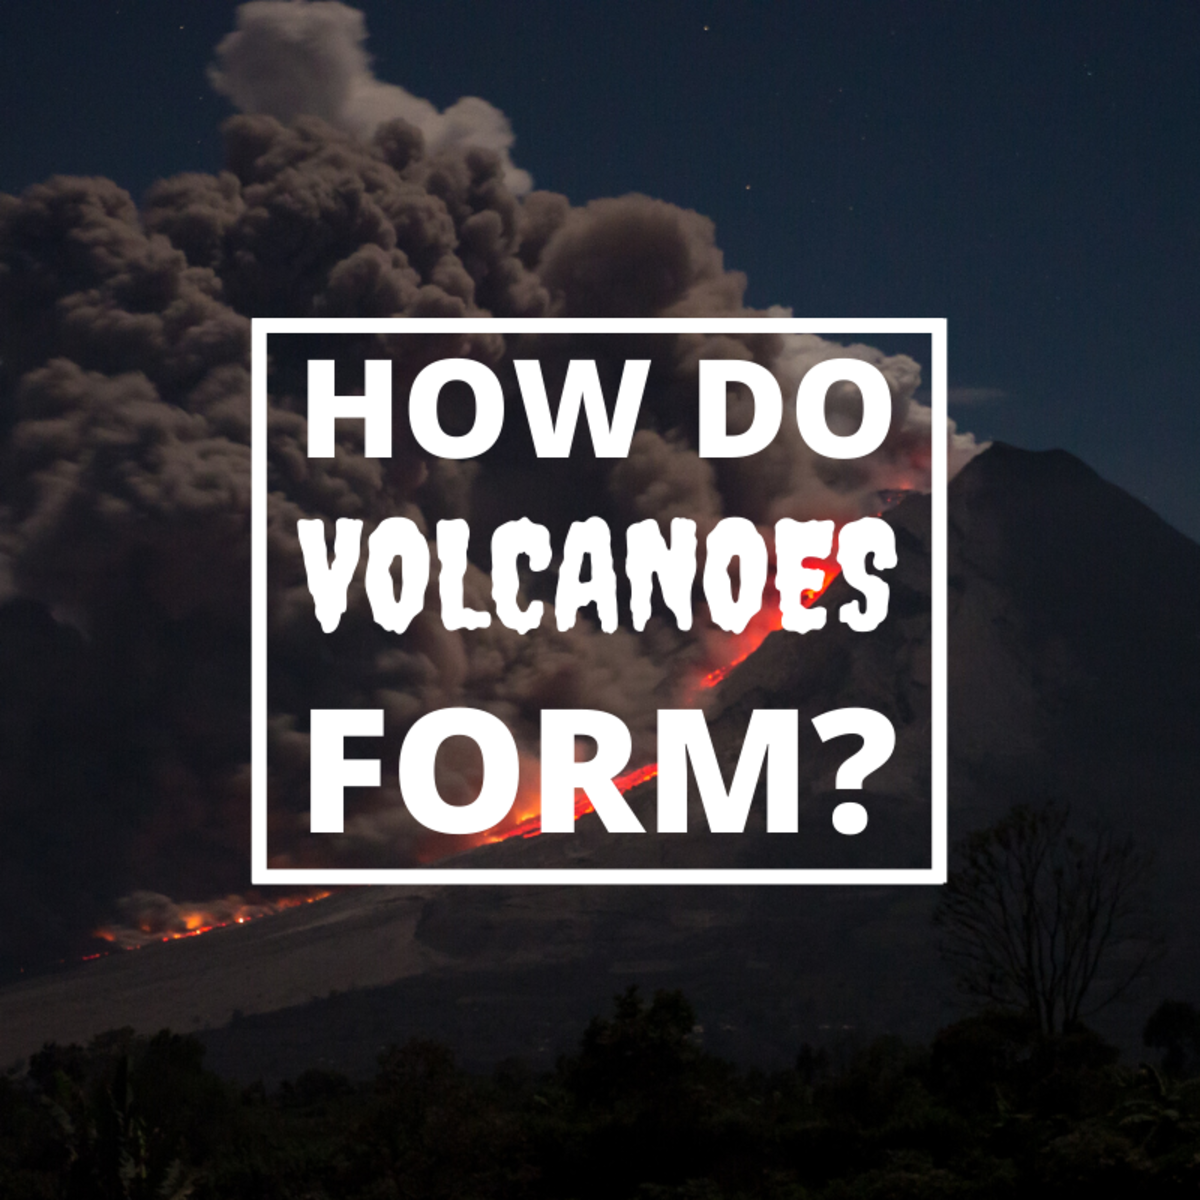 How Does a Volcano Form?